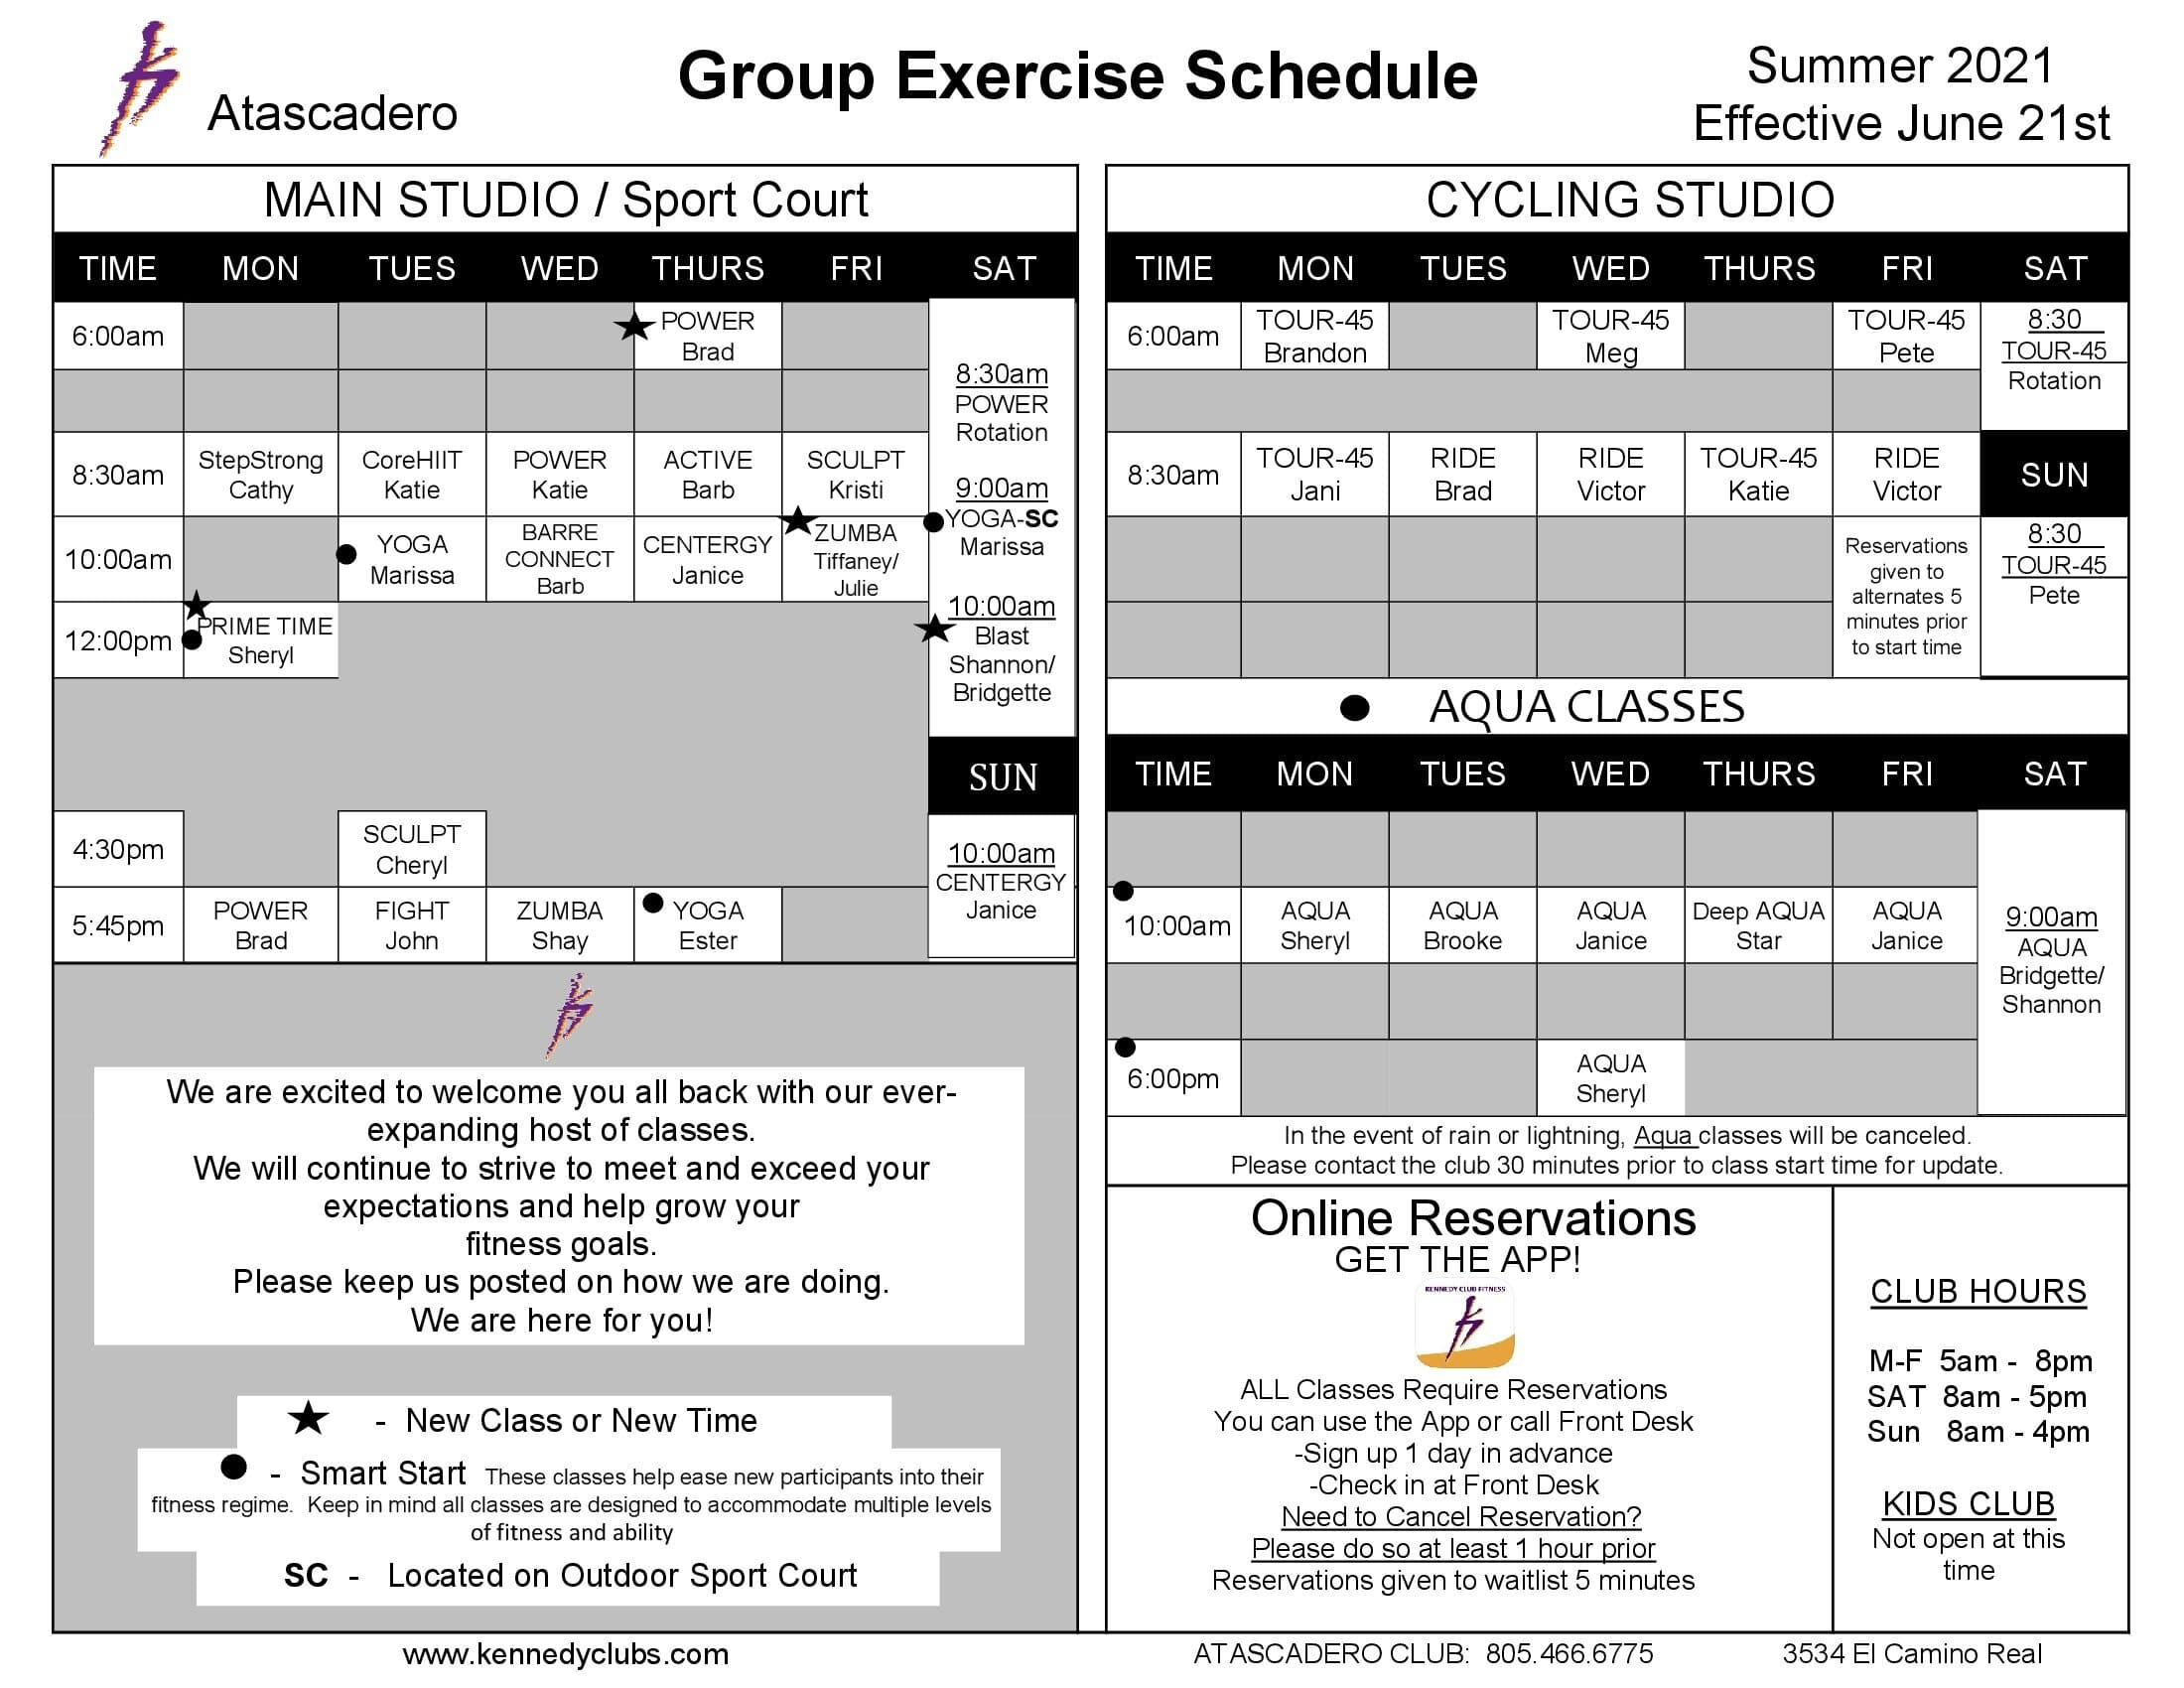 Kennedy Club Fitness Atascadero Group Exercise Schedule 06 21 2021